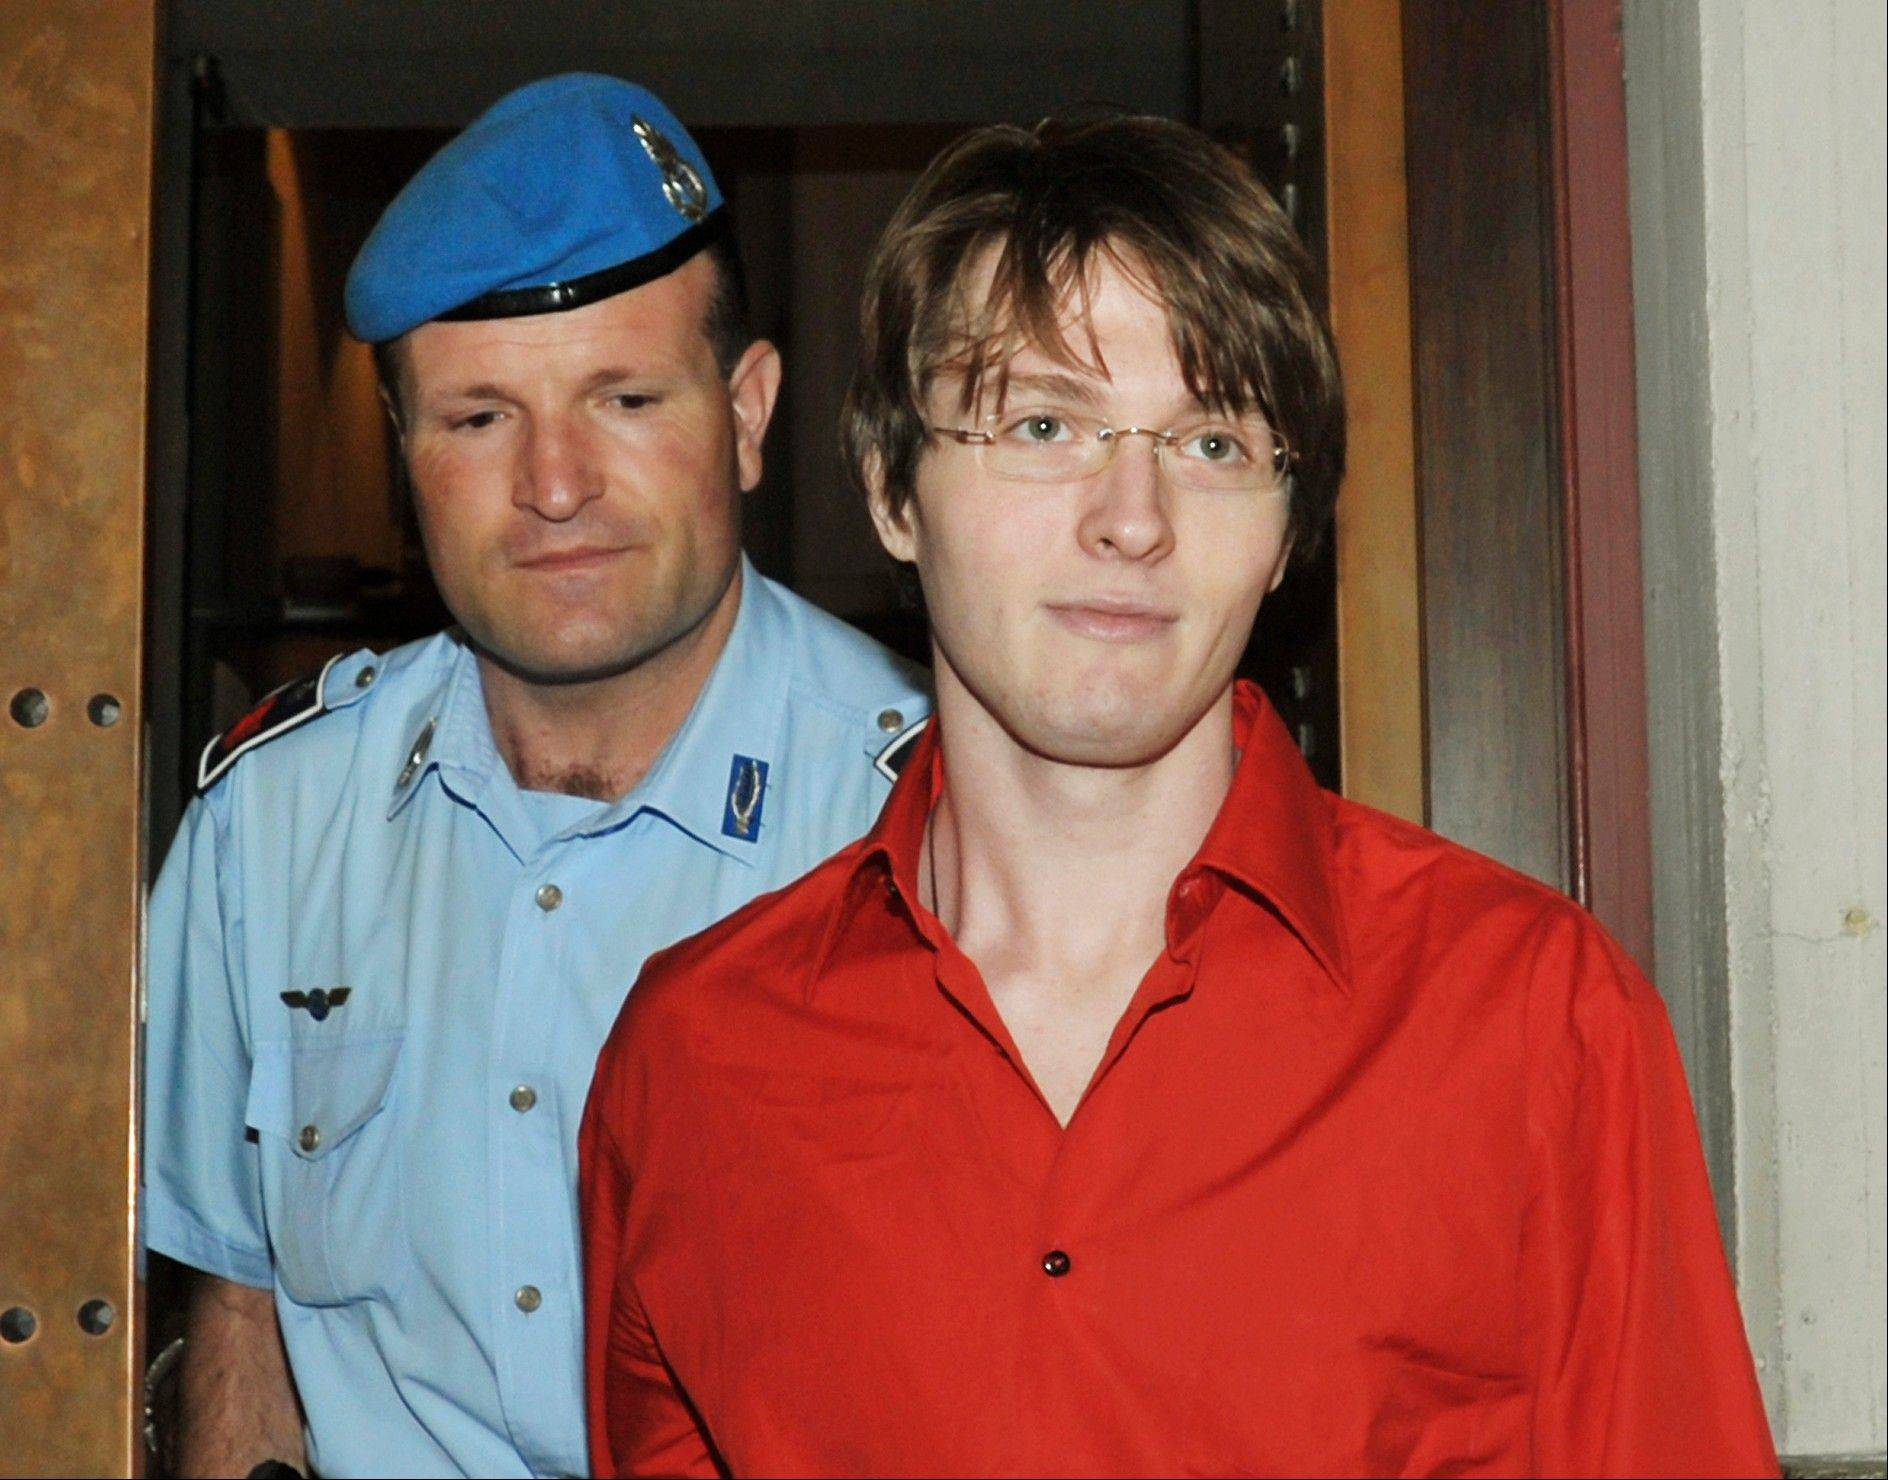 Raffaele Sollecito, whose budding love affair with American exchange student Amanda Knox helped land him in an Italian prison for four years, maintains the couple�s innocence in a new book but acknowledges that their sometimes bizarre behavior after her roommate�s killing gave police reason for suspicion.